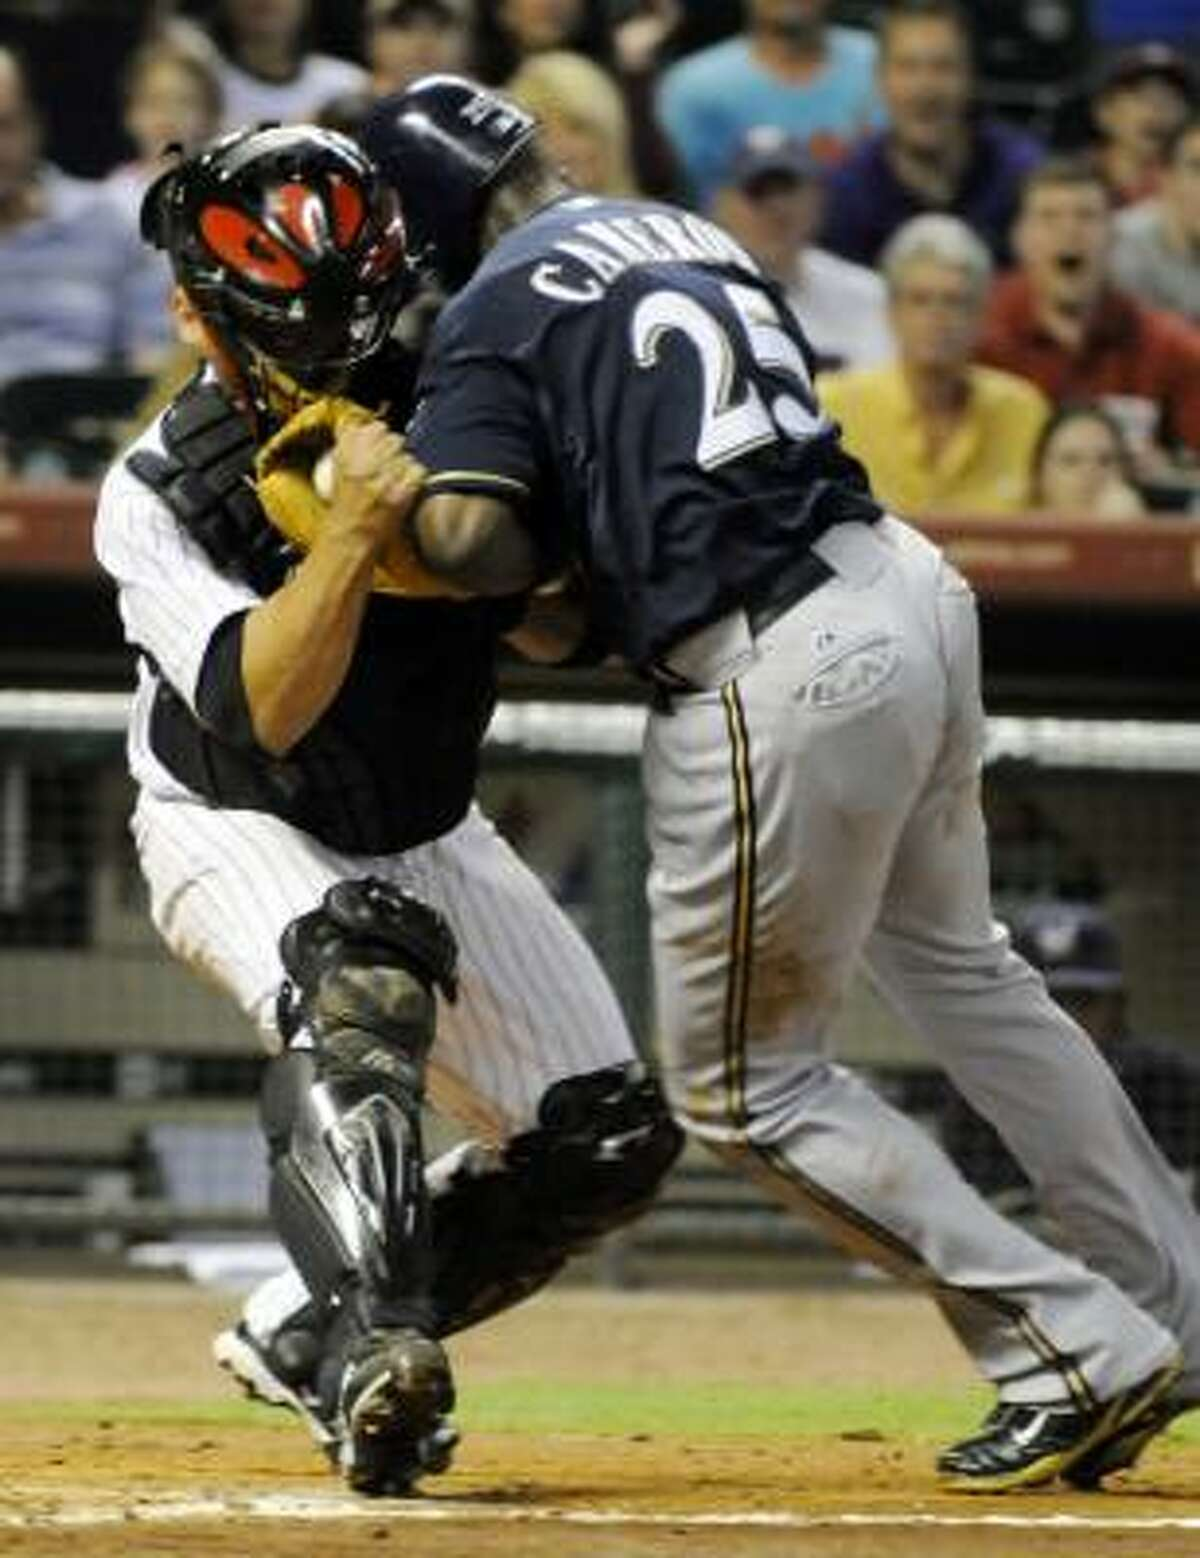 Milwaukee Brewers center fielder Mike Cameron collides with Astros catcher Humberto Quintero at home plate in the fourth inning. Cameron was out on the play and Quintero left the game.